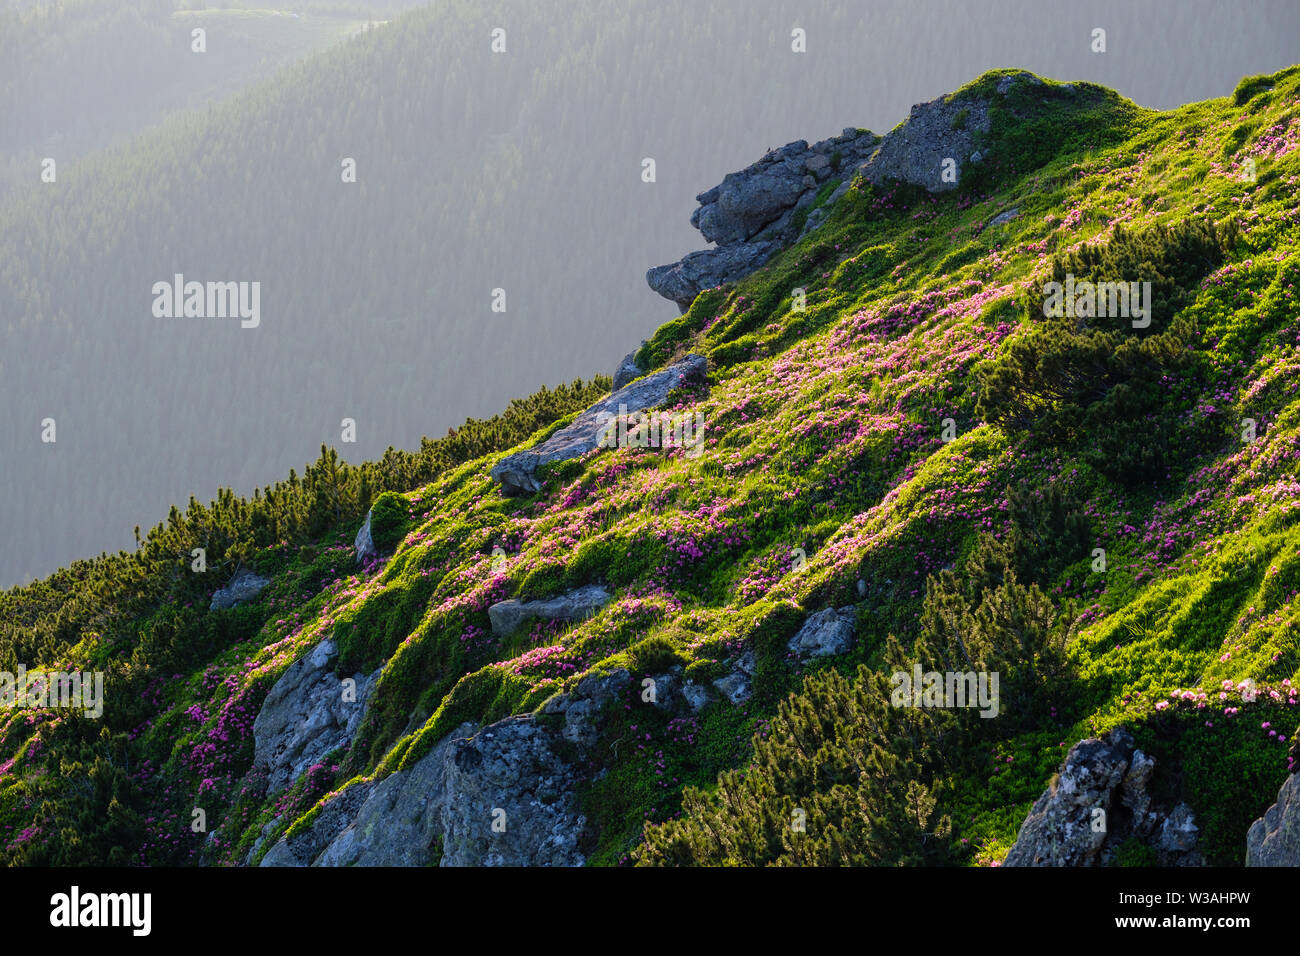 Pink rose rhododendron flowers and big rocky boulders on summer mountain slope. Carpathian, Chornohora, Ukraine. - Stock Image